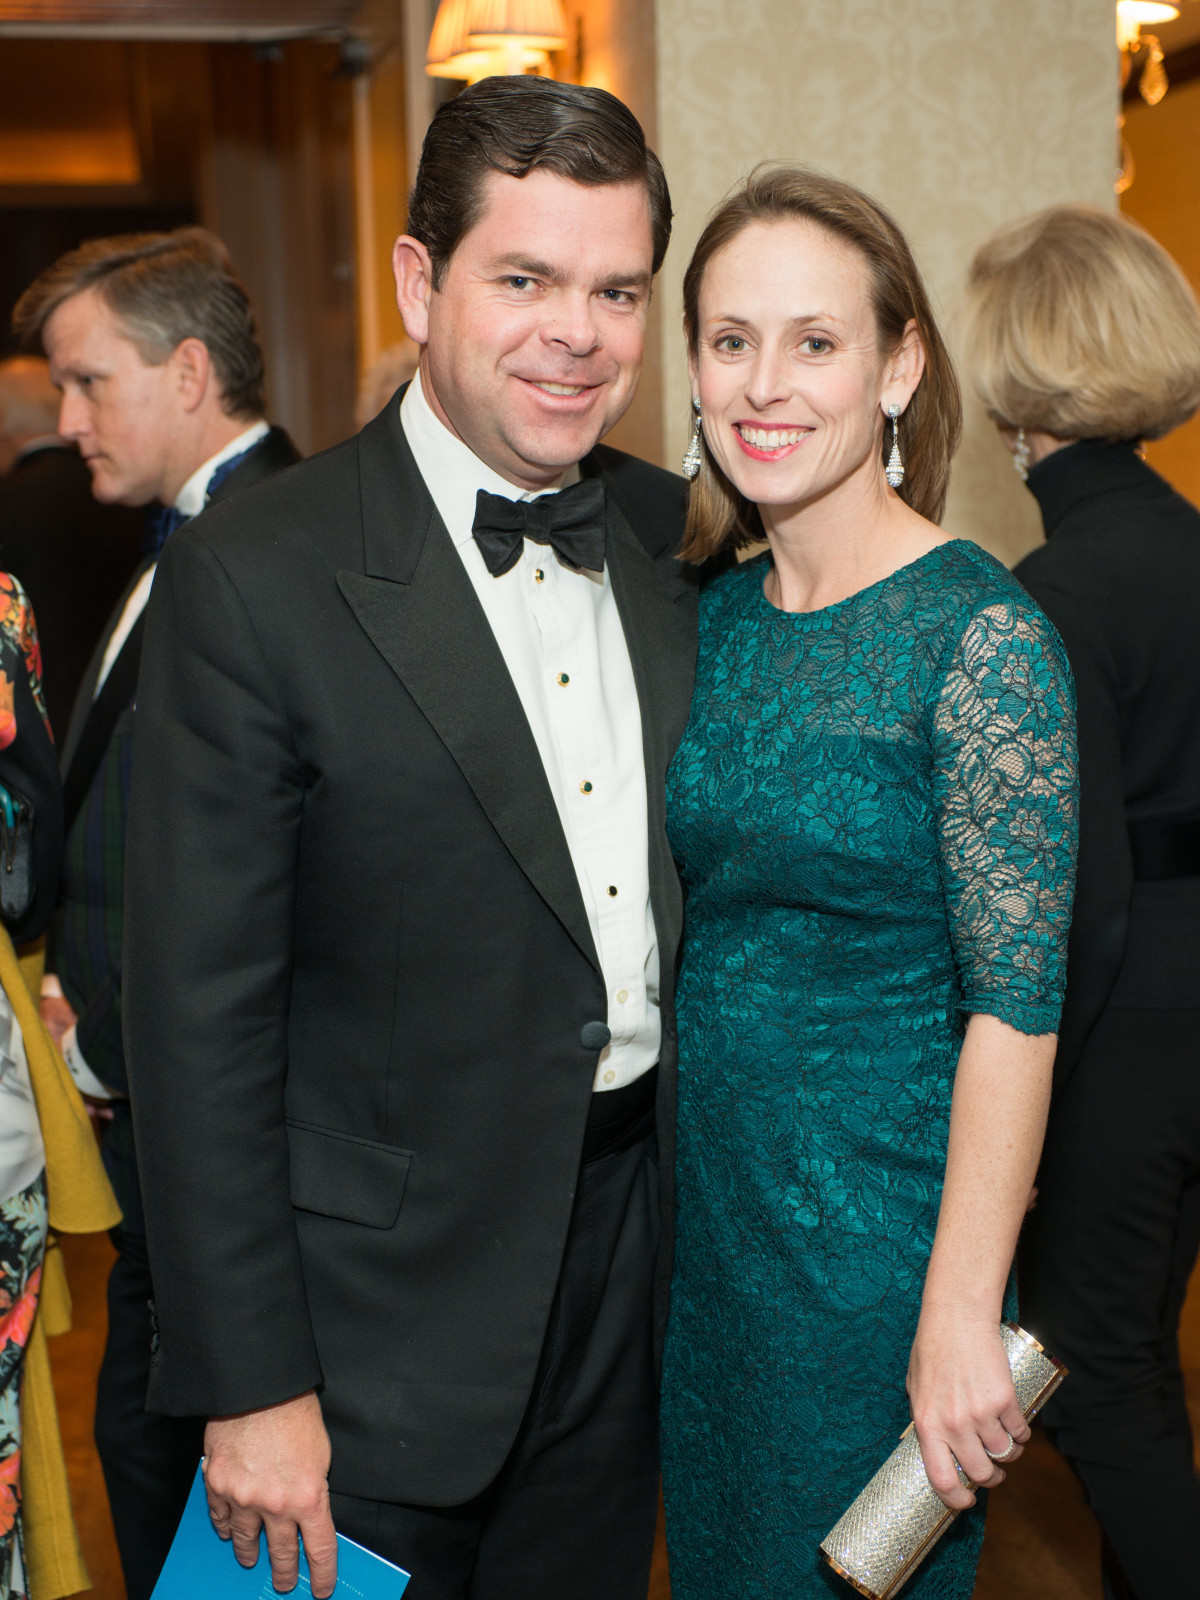 Inprint Gala Dan Gilbane, Eleanor Gilbane